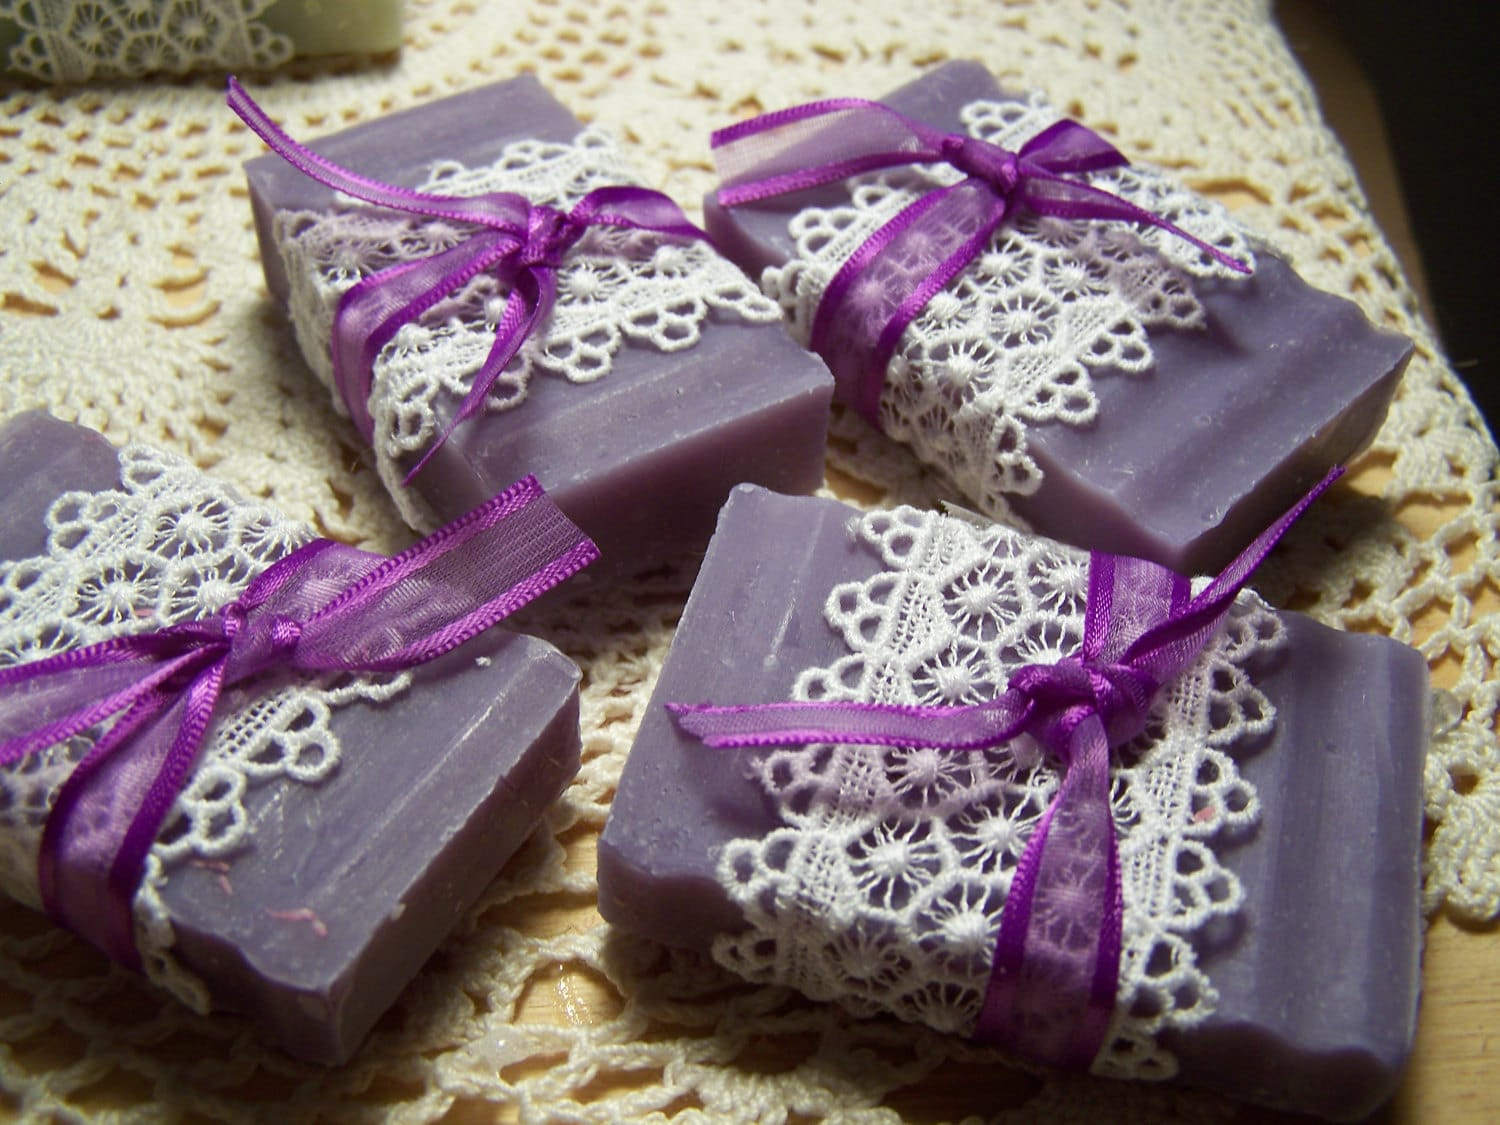 Wedding Favour Gifts: 50 Wedding Favors Soaps Mini Soaps Lilac Shea Butter